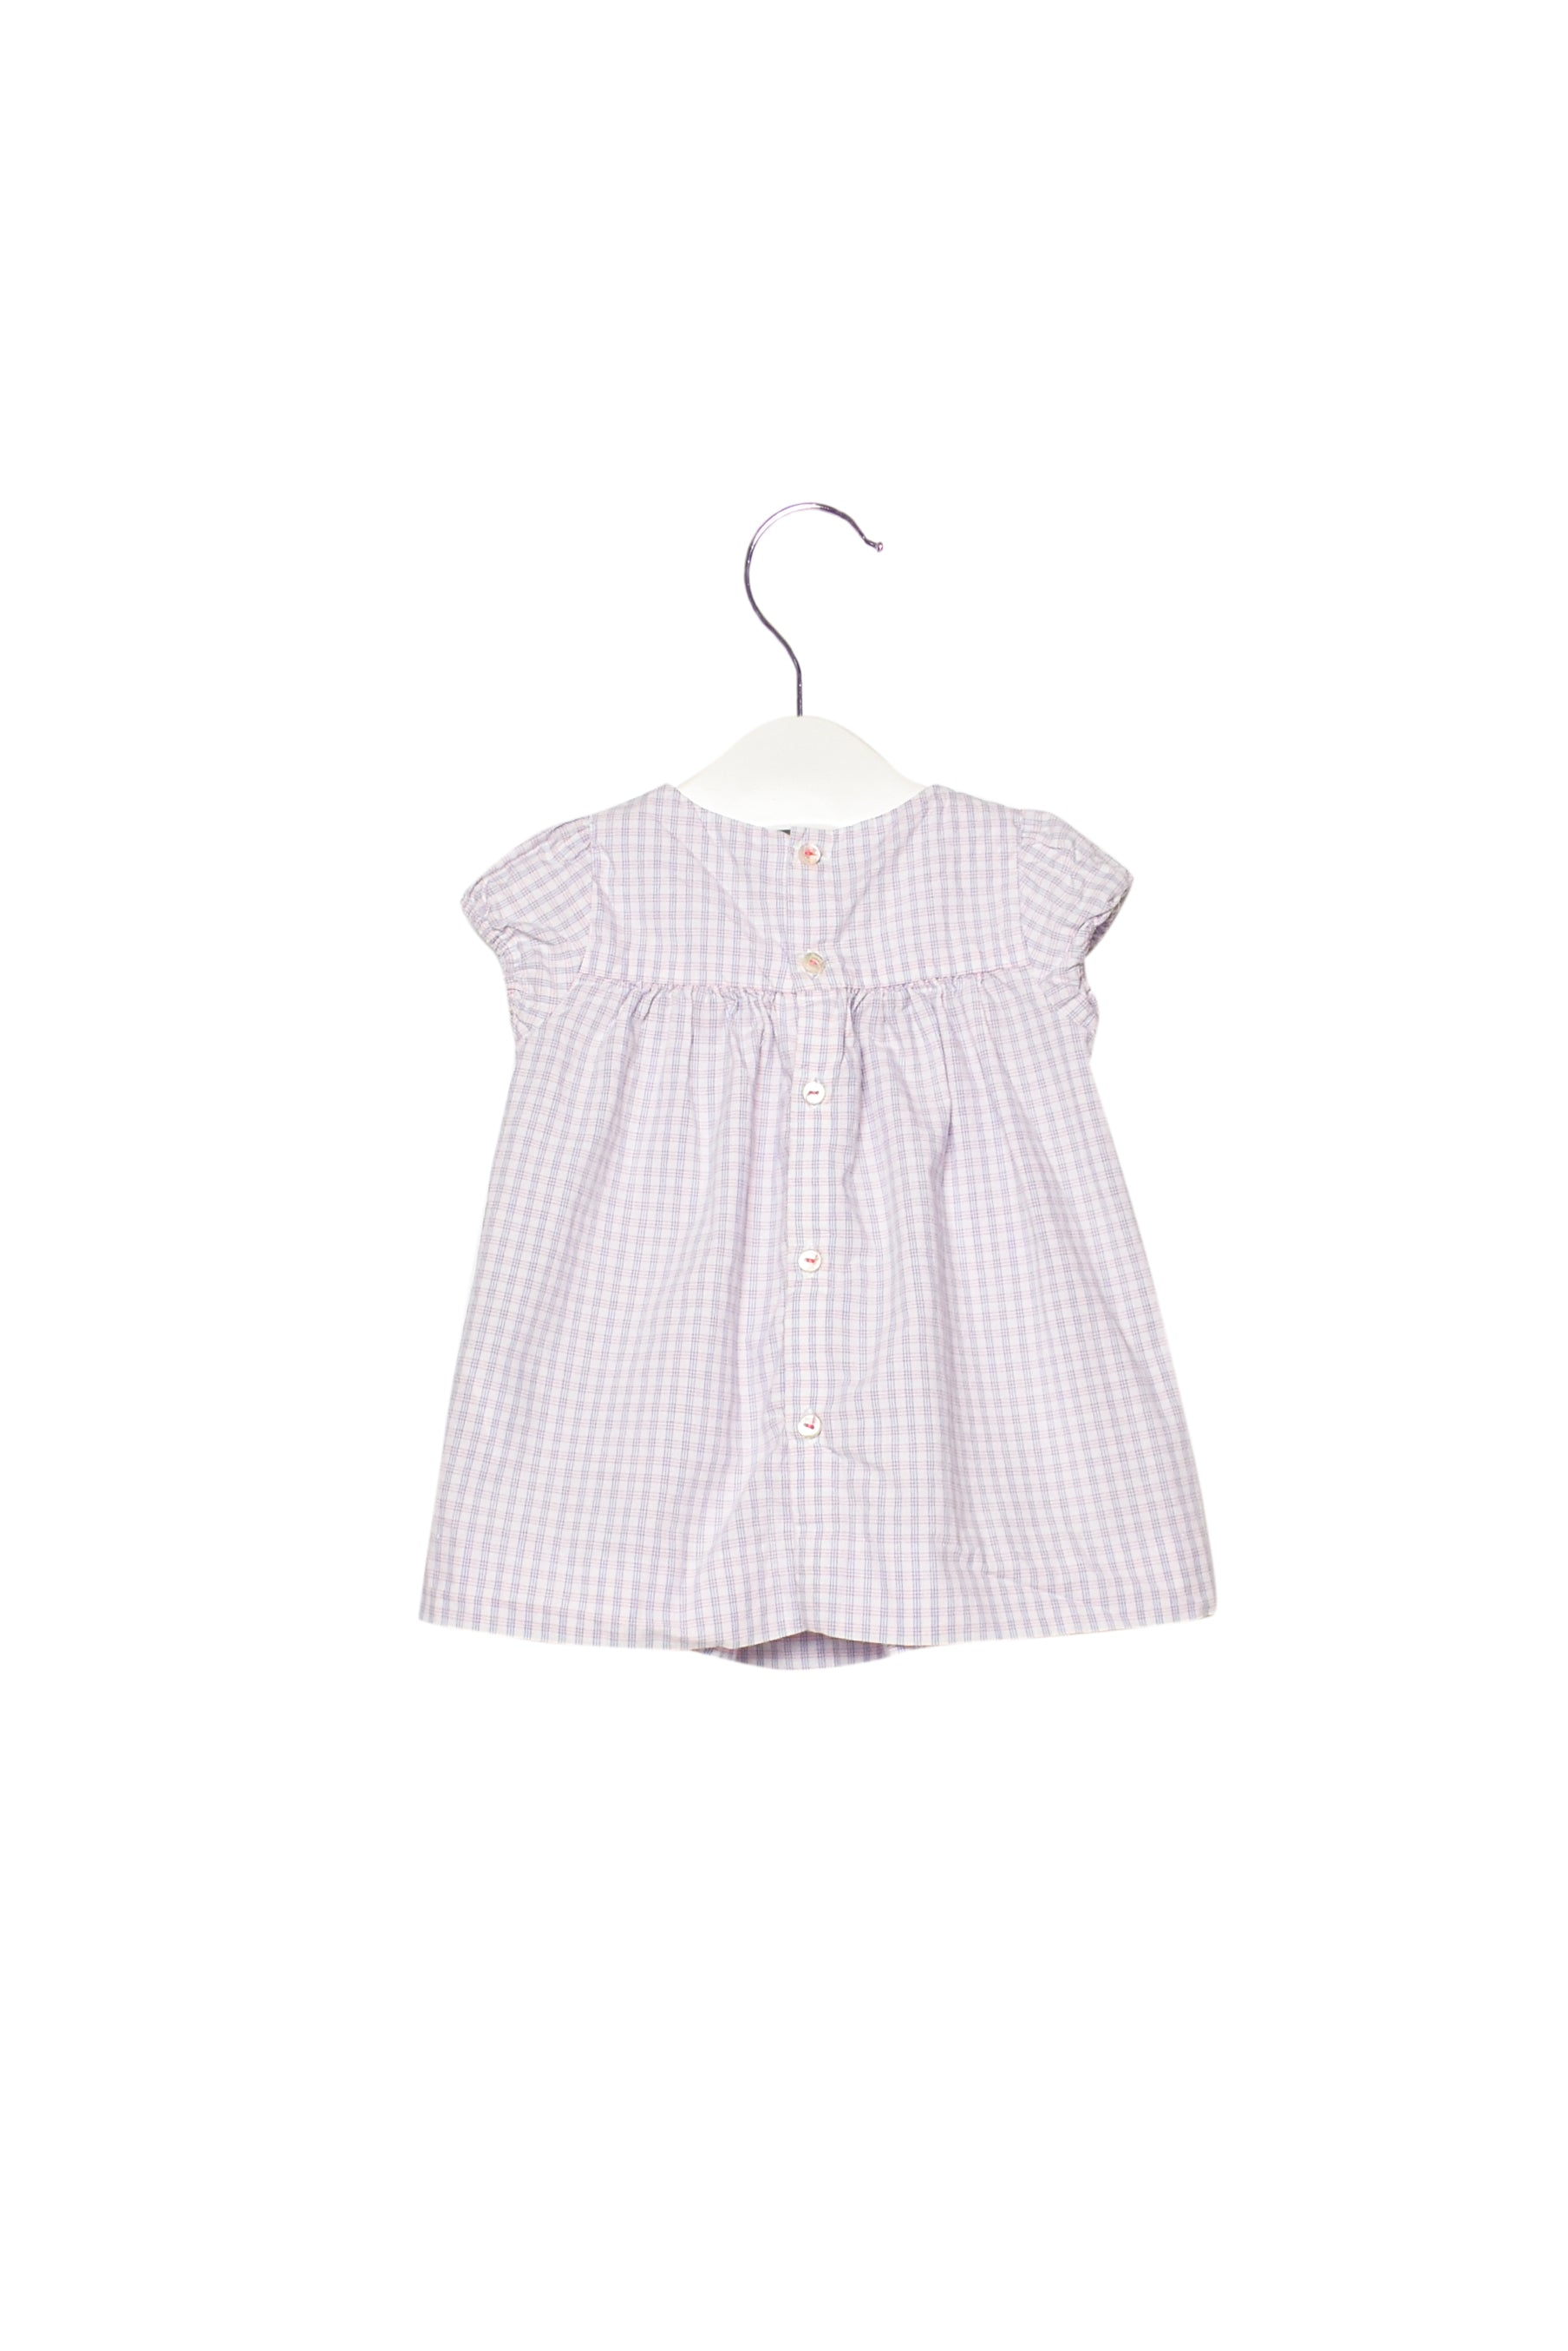 10011983 Jacadi Baby ~ Dress and Bloomer 3M at Retykle